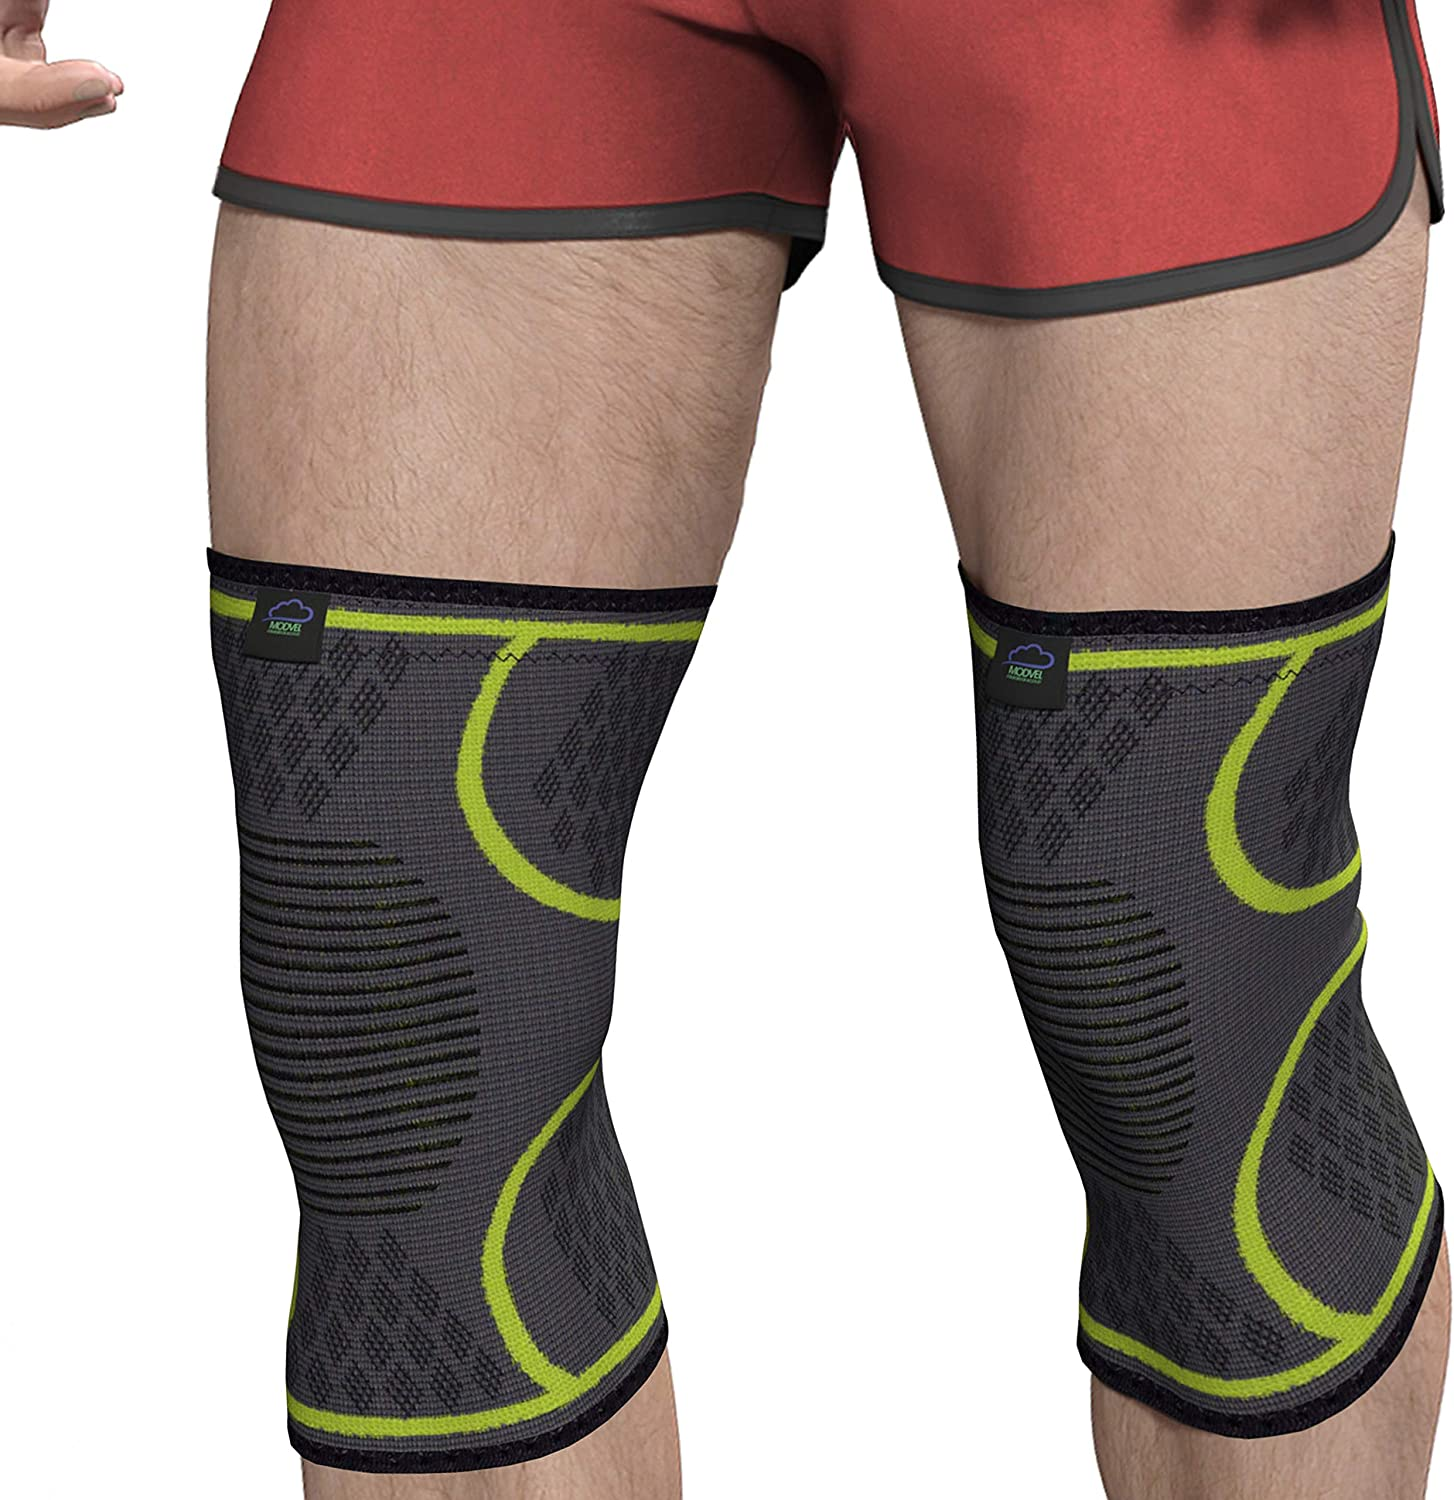 Modvel Compression Knee Sleeve (1 Pair)  FDA Approved, Knee Brace Support for Arthritis, ACL, Running, Biking, Basketball Sports, Joint Pain Relief, Meniscus Tear, Faster Injury Recovery.